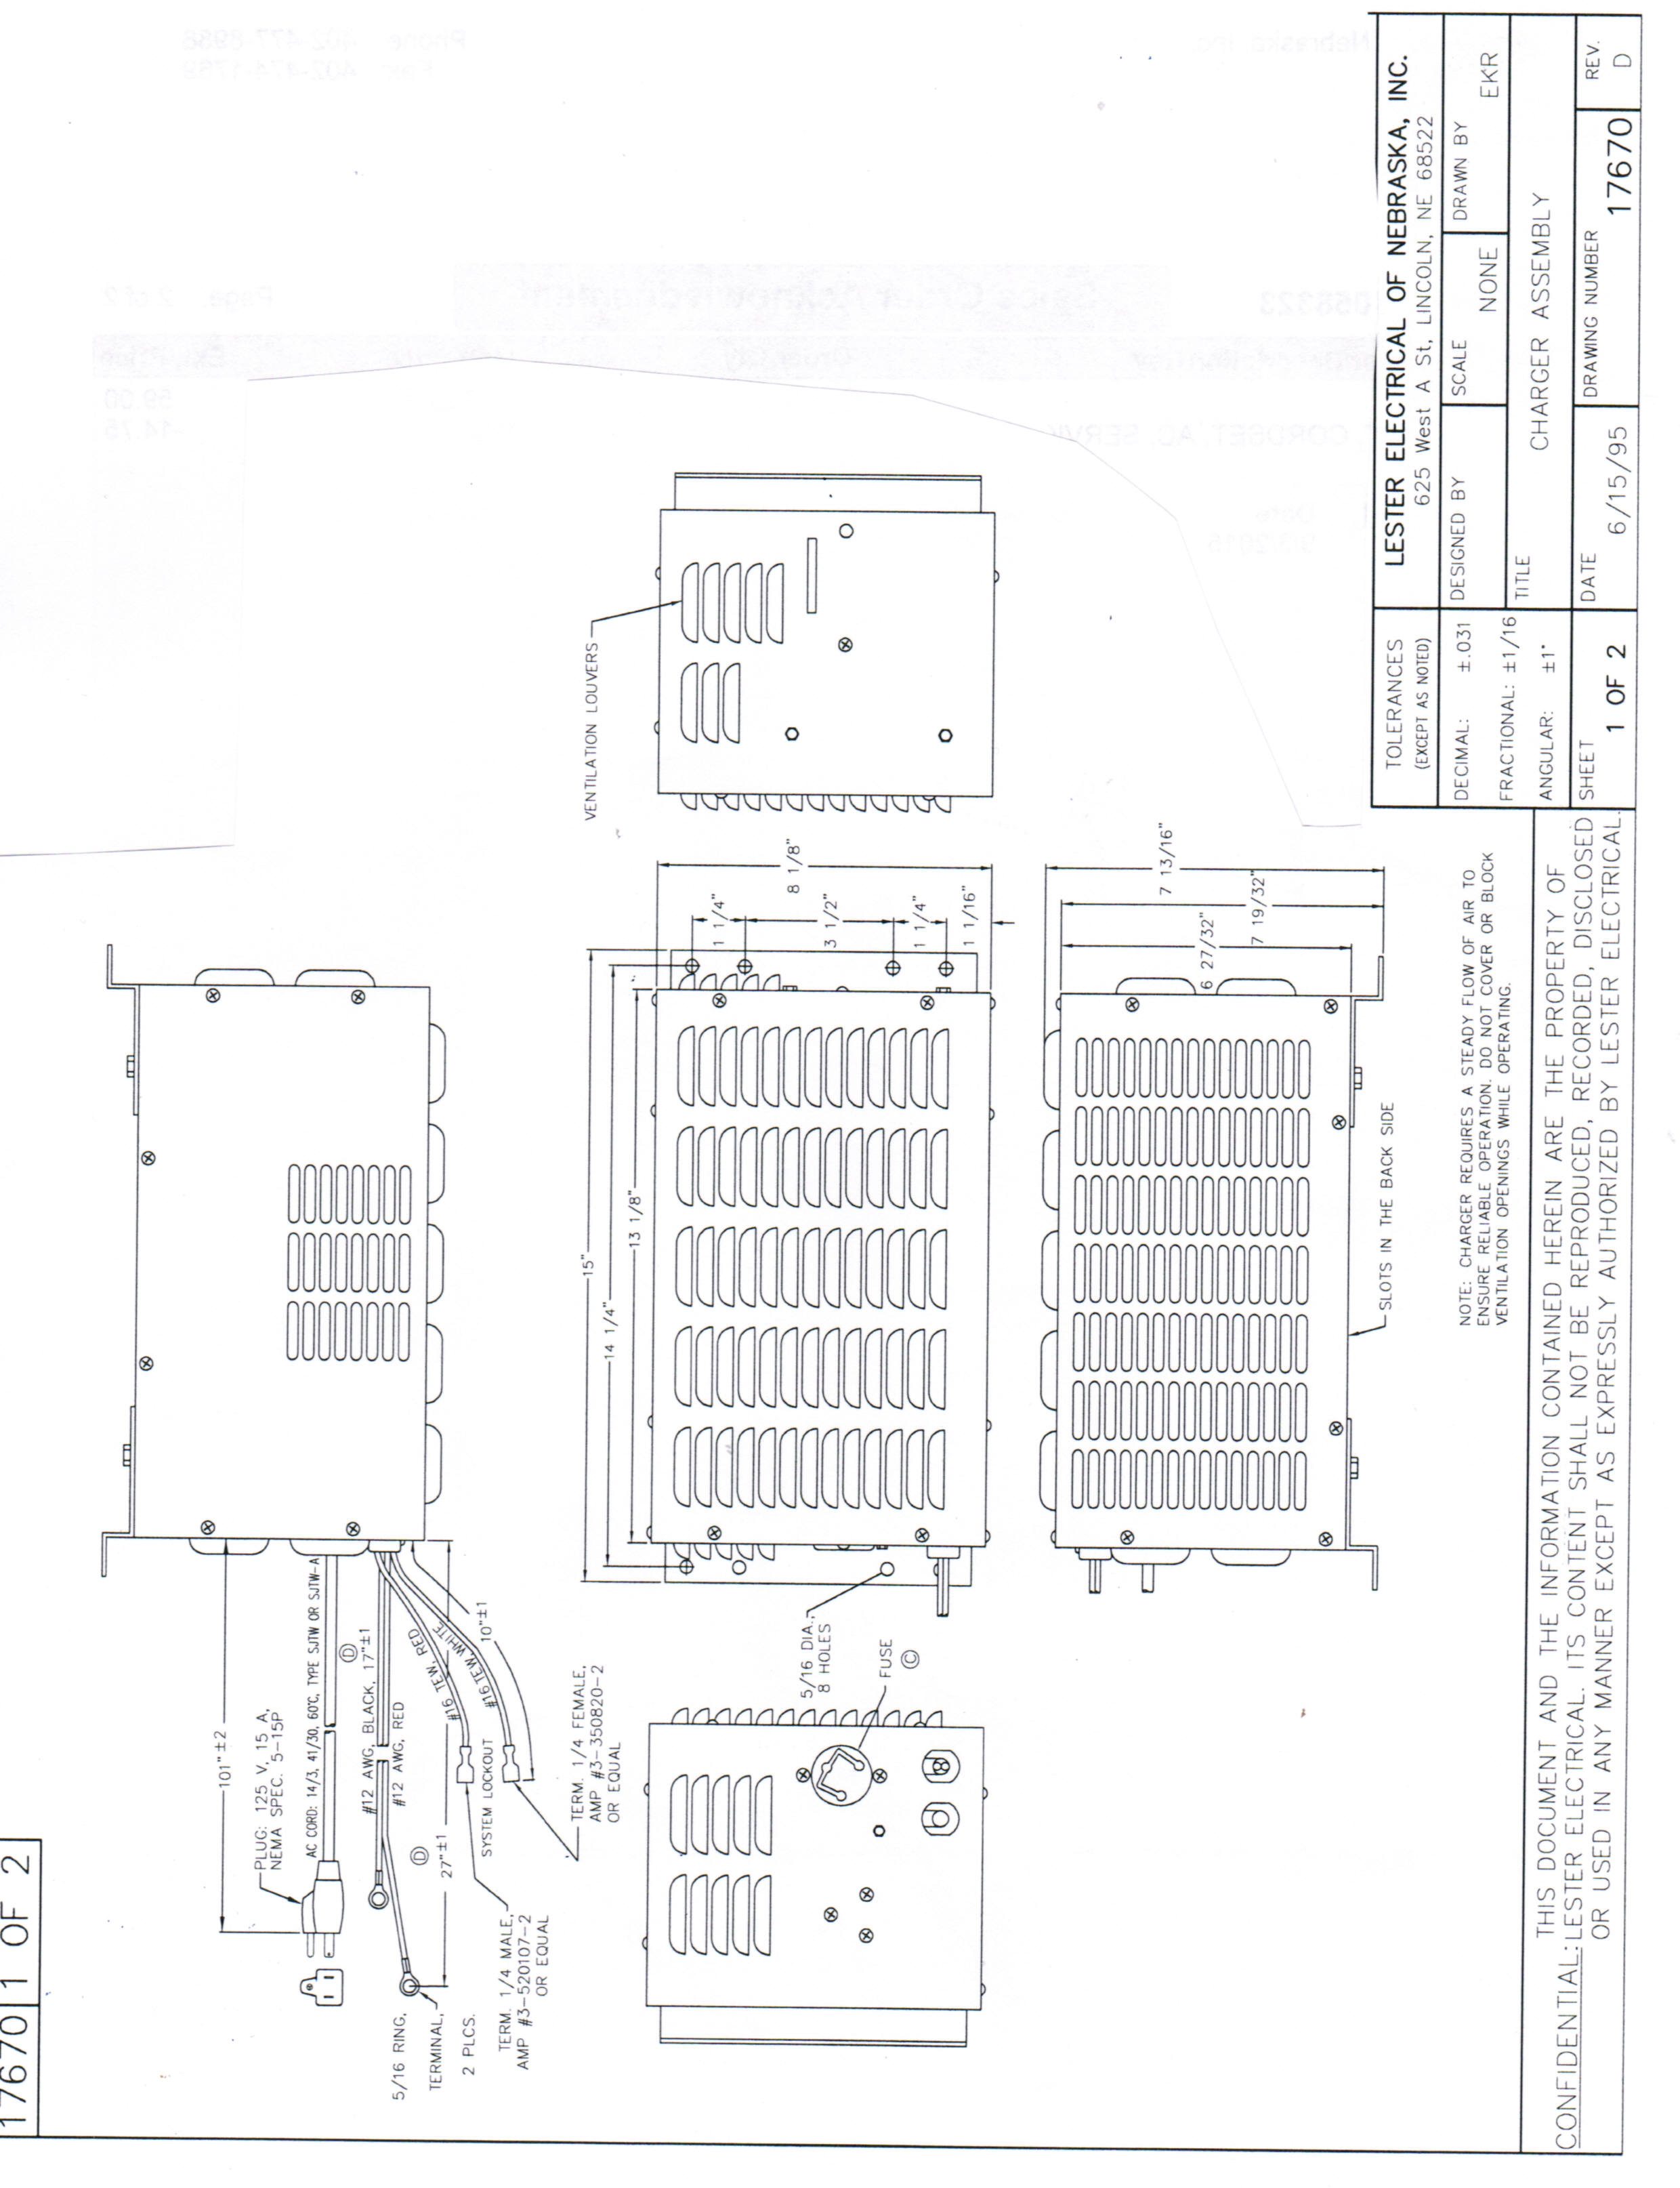 17670 dwg lester battery charger wiring diagram lester wiring diagrams  at virtualis.co